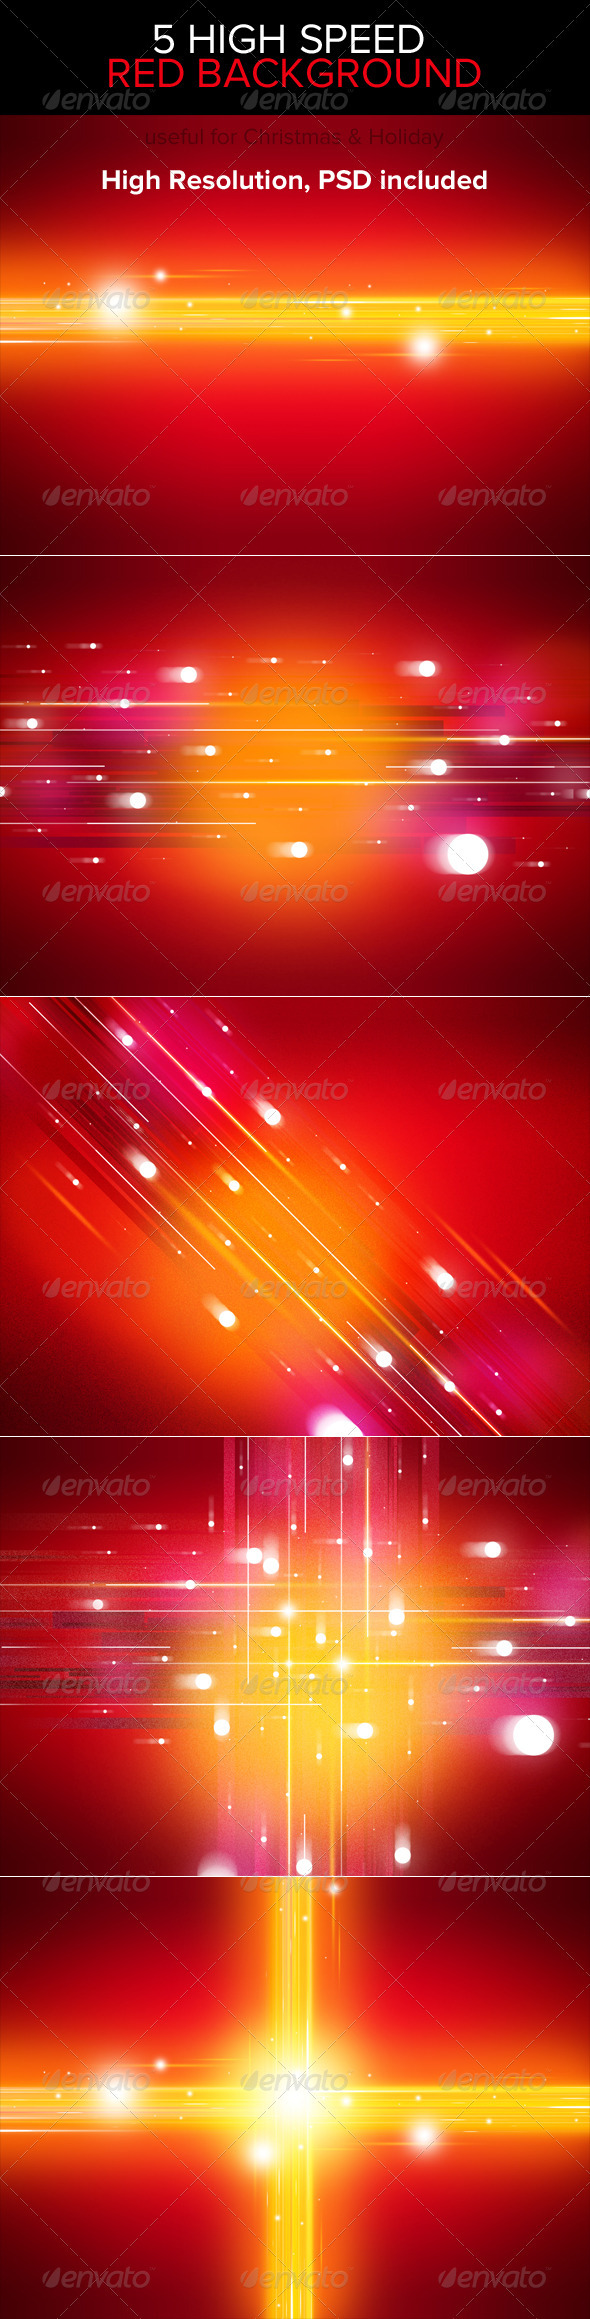 High Speed Red Backgrounds - Abstract Backgrounds